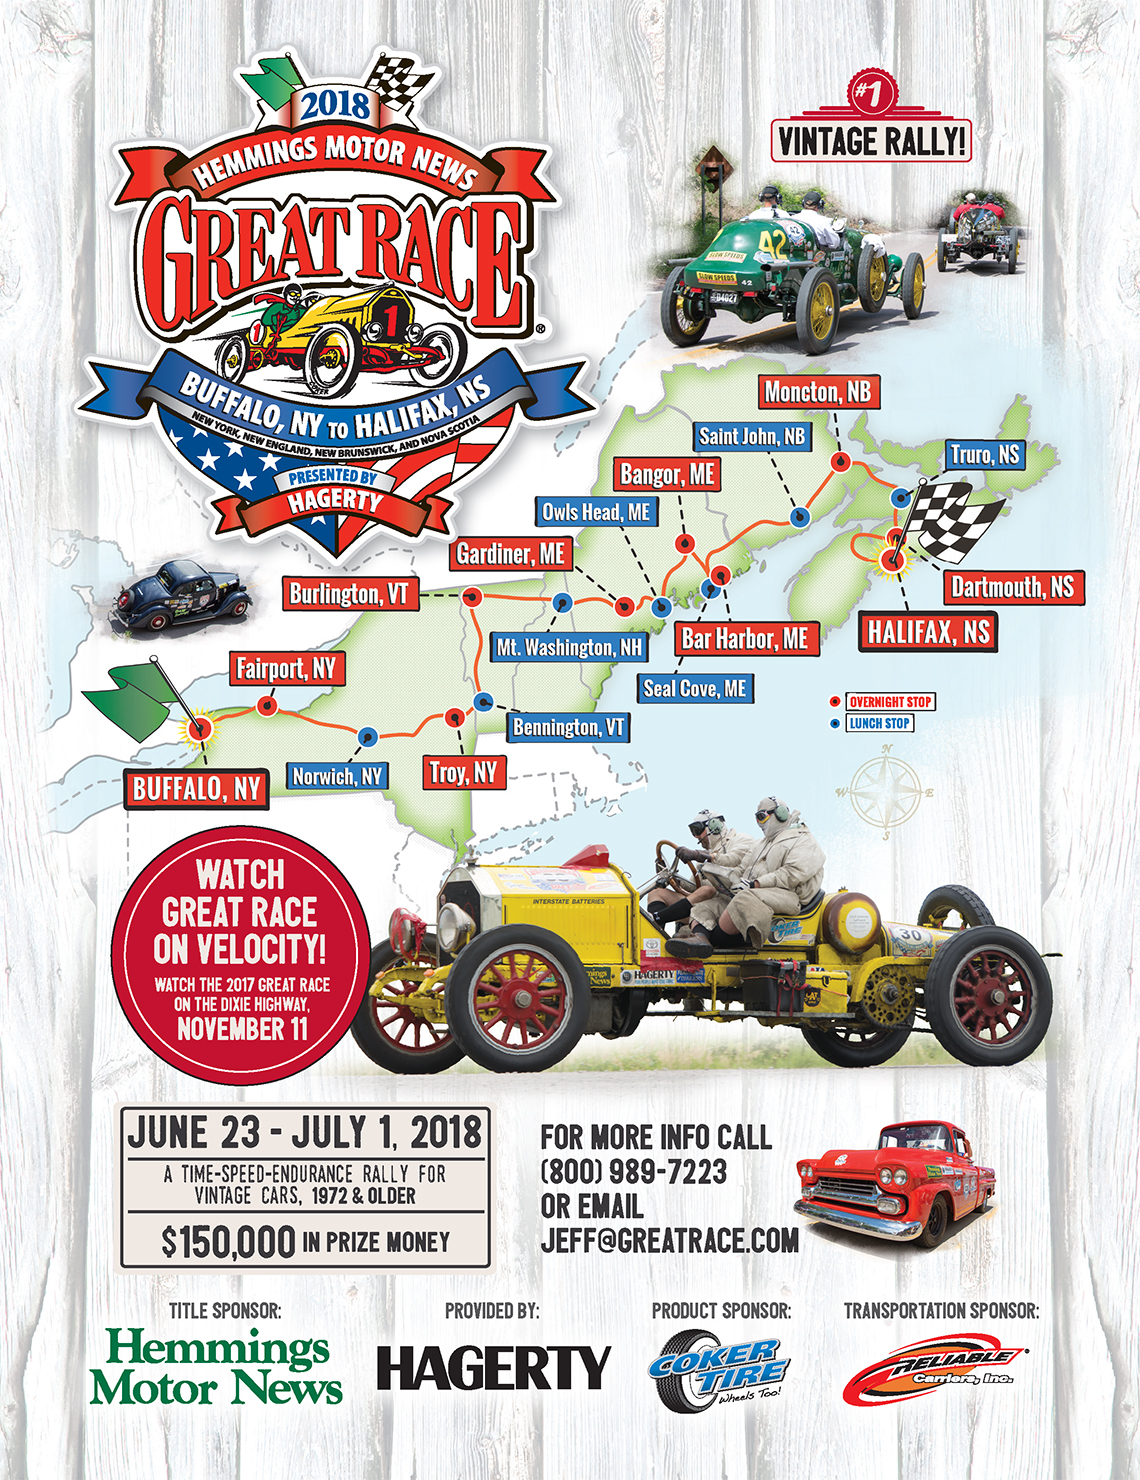 2018 Great Race route